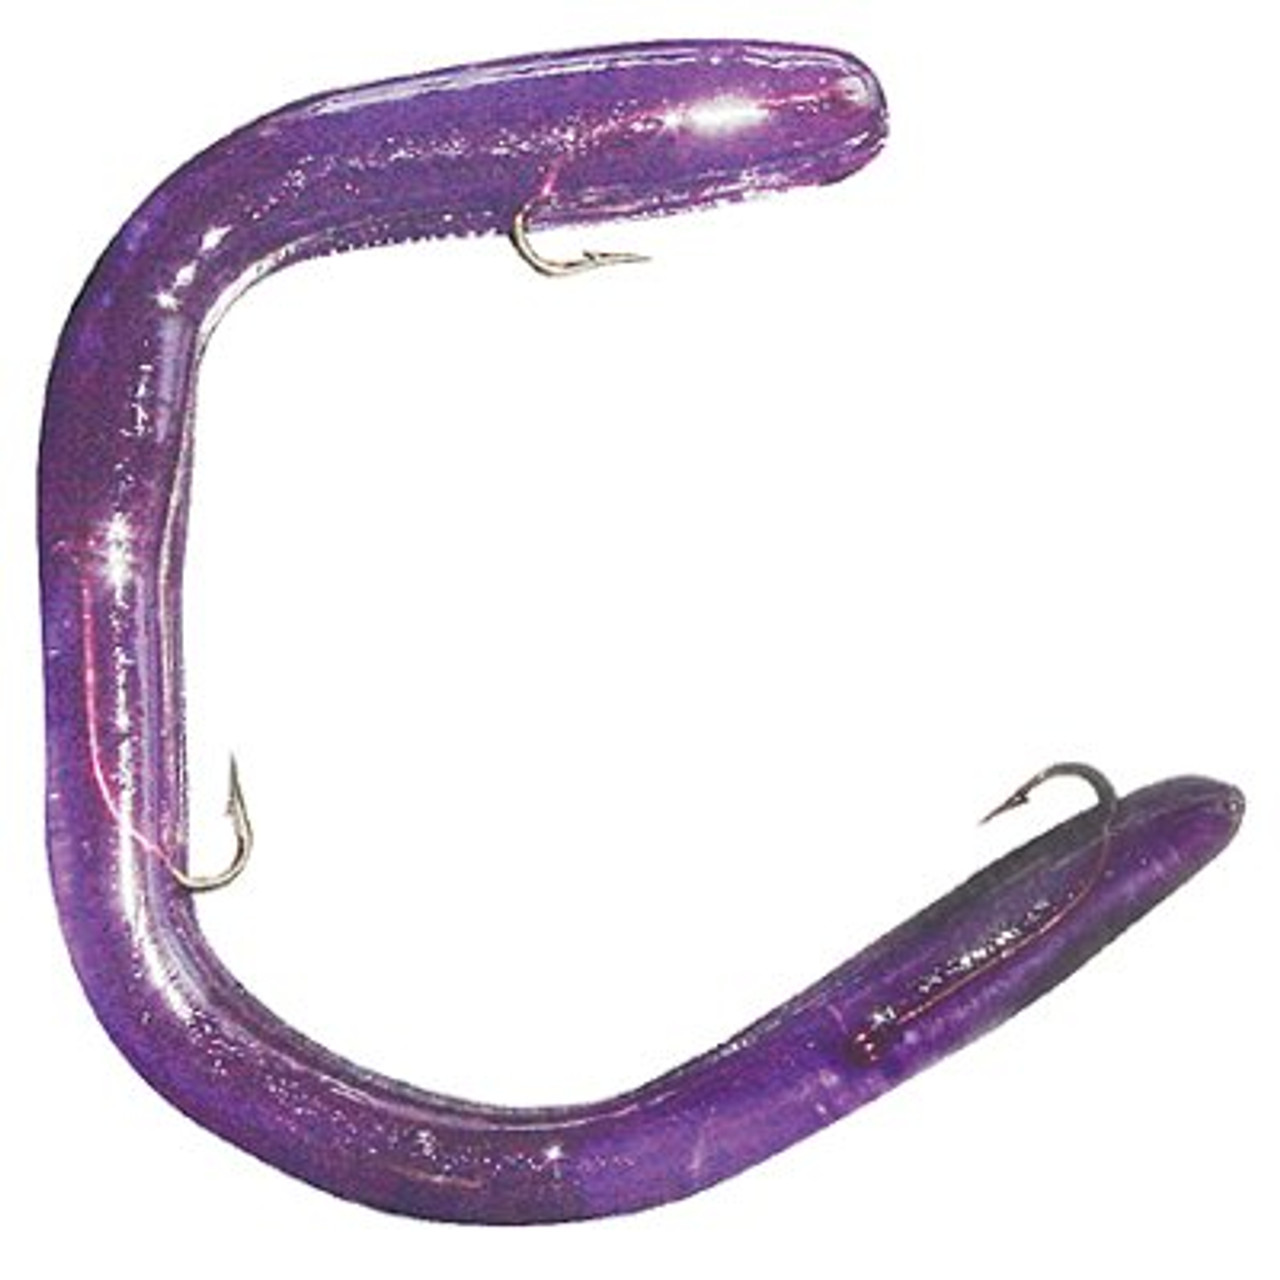 "Purple Grape 20 Count New Other Bulk 8/"" Paddle Tail Worms"